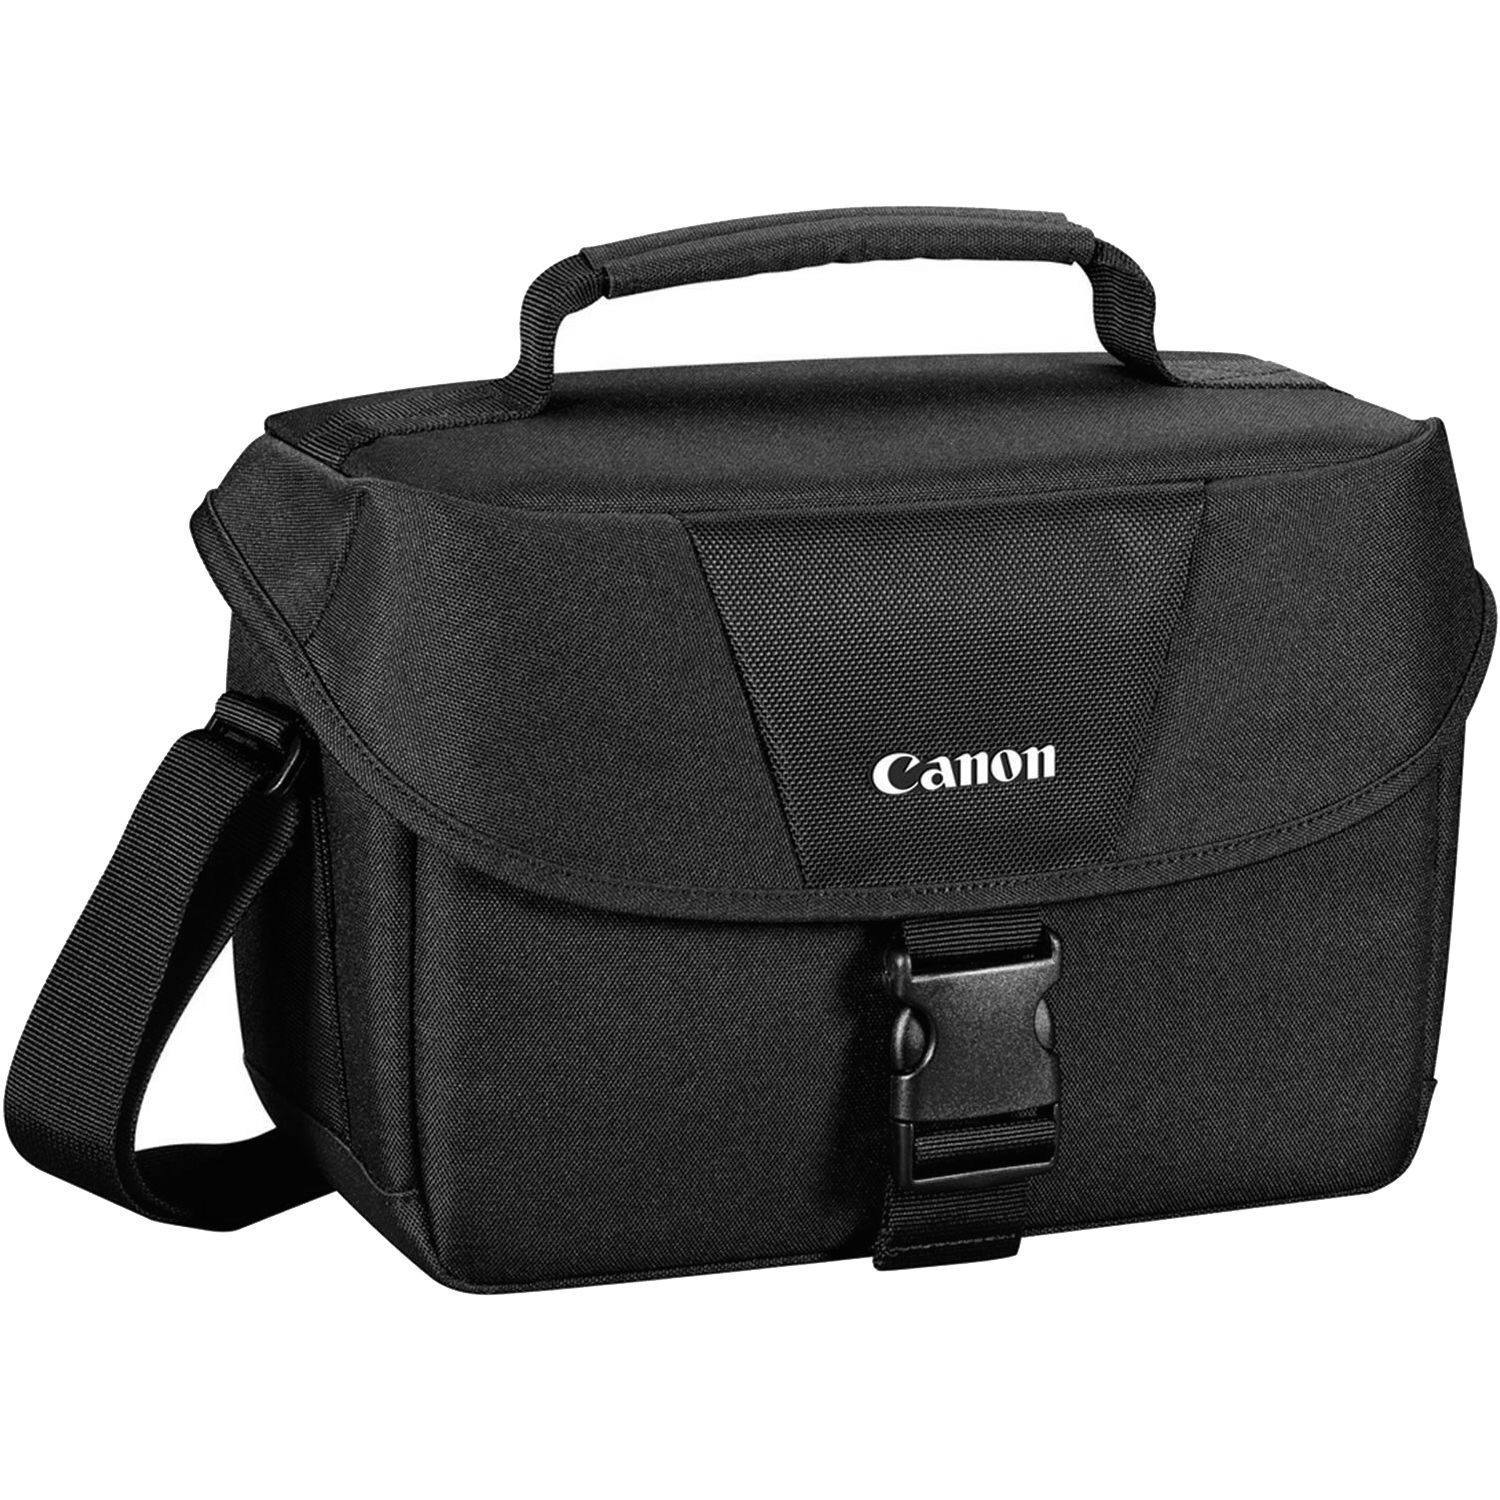 New Digital SLR DSLR Camera or Camcorder Padded Shoulder Bag